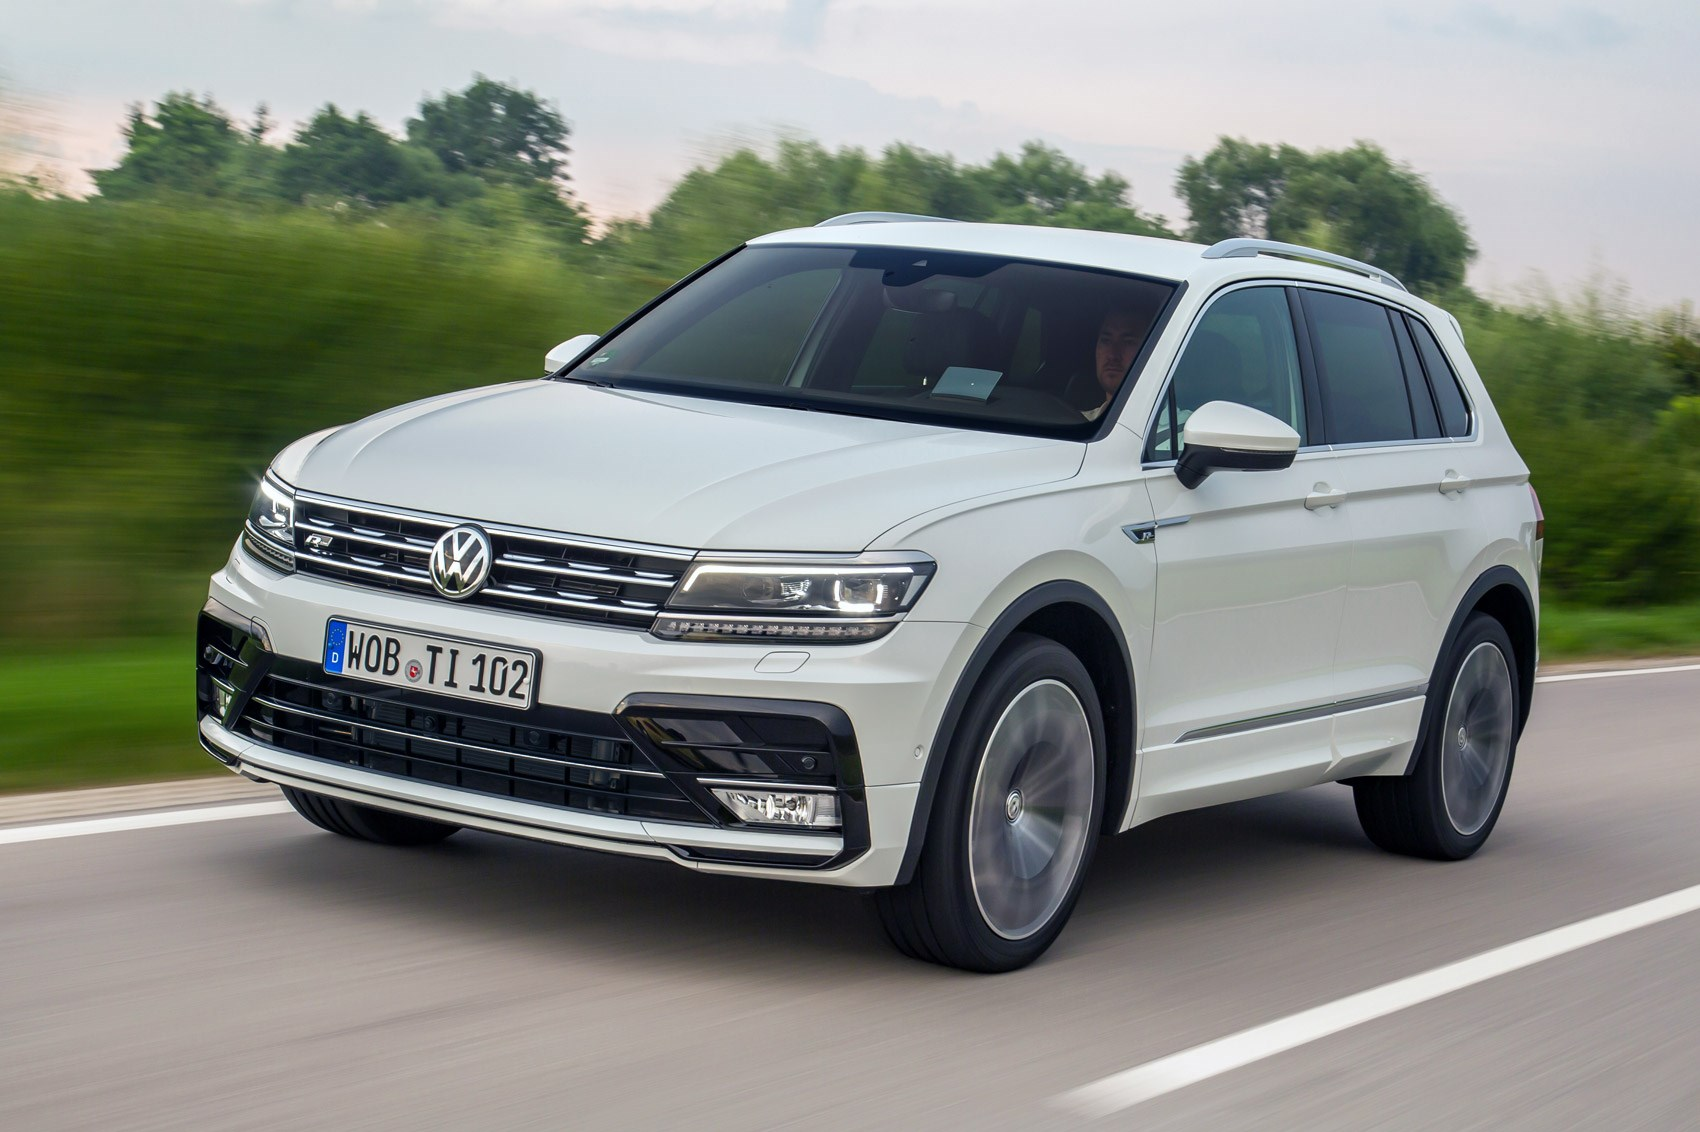 vw tiguan 2 0 bitdi 240 4motion r line 2016 review car magazine. Black Bedroom Furniture Sets. Home Design Ideas